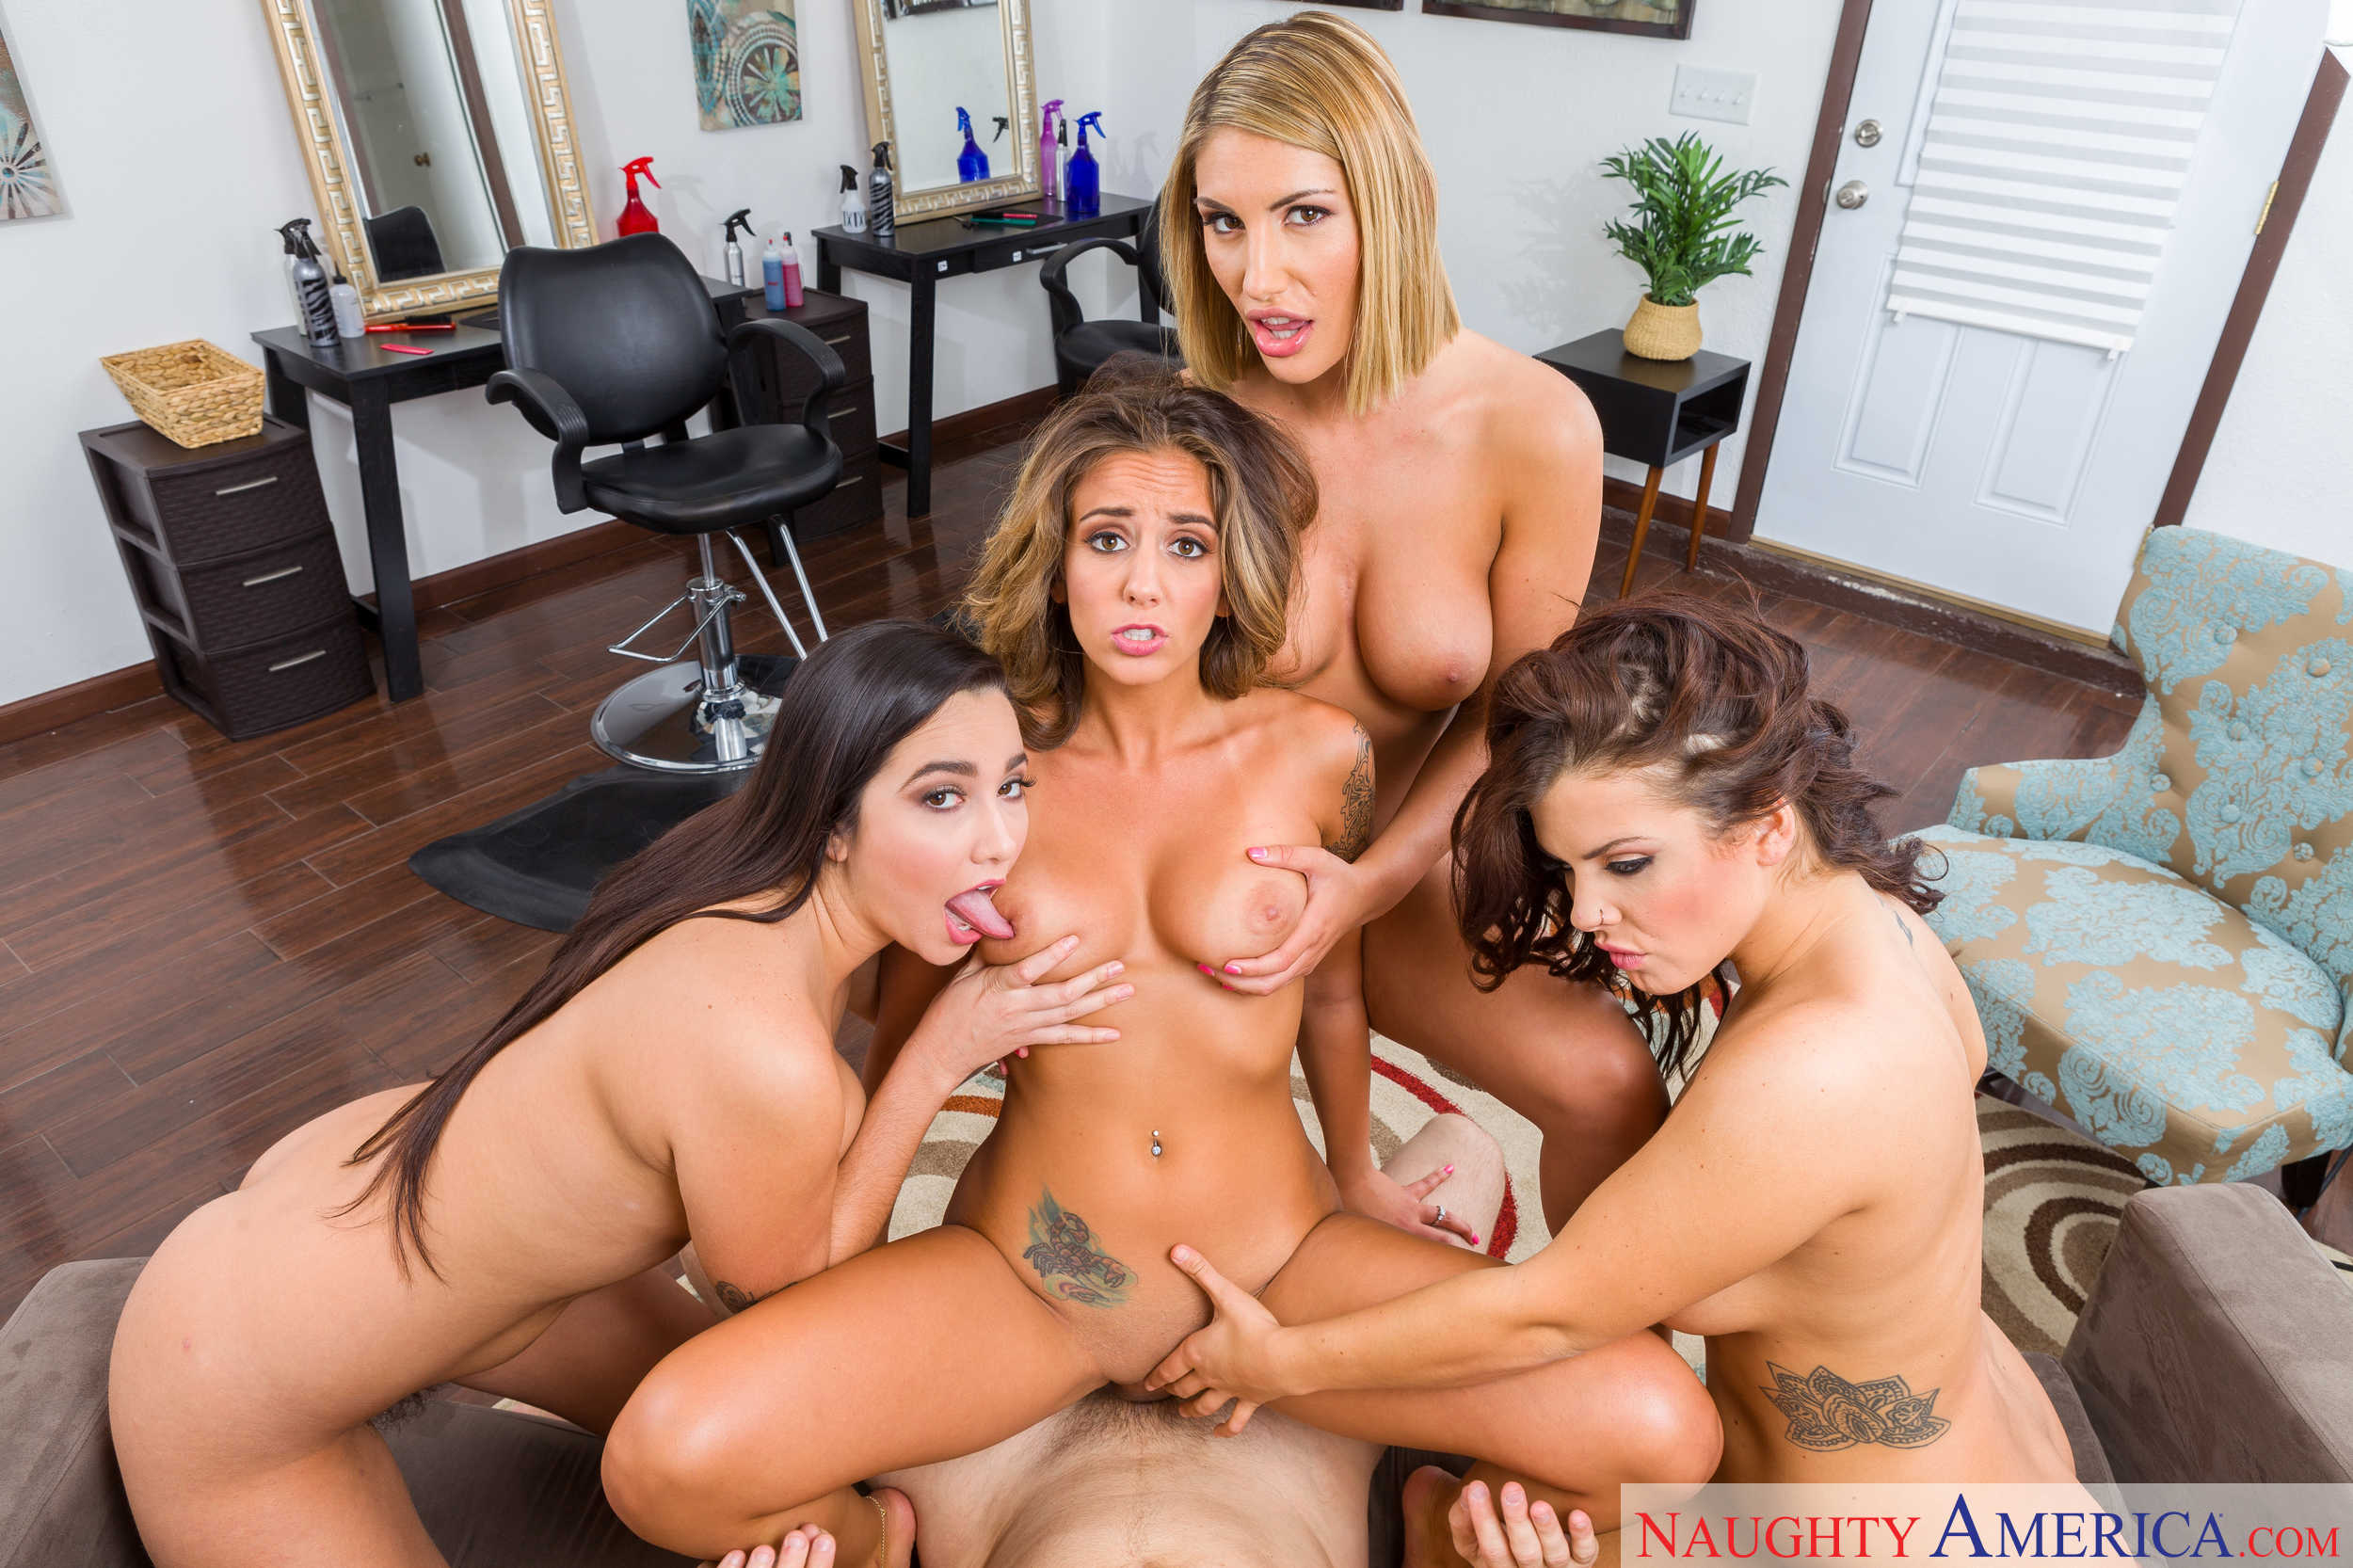 August Ames Karlee Grey Keisha Grey and Layla London in Sizzer ...